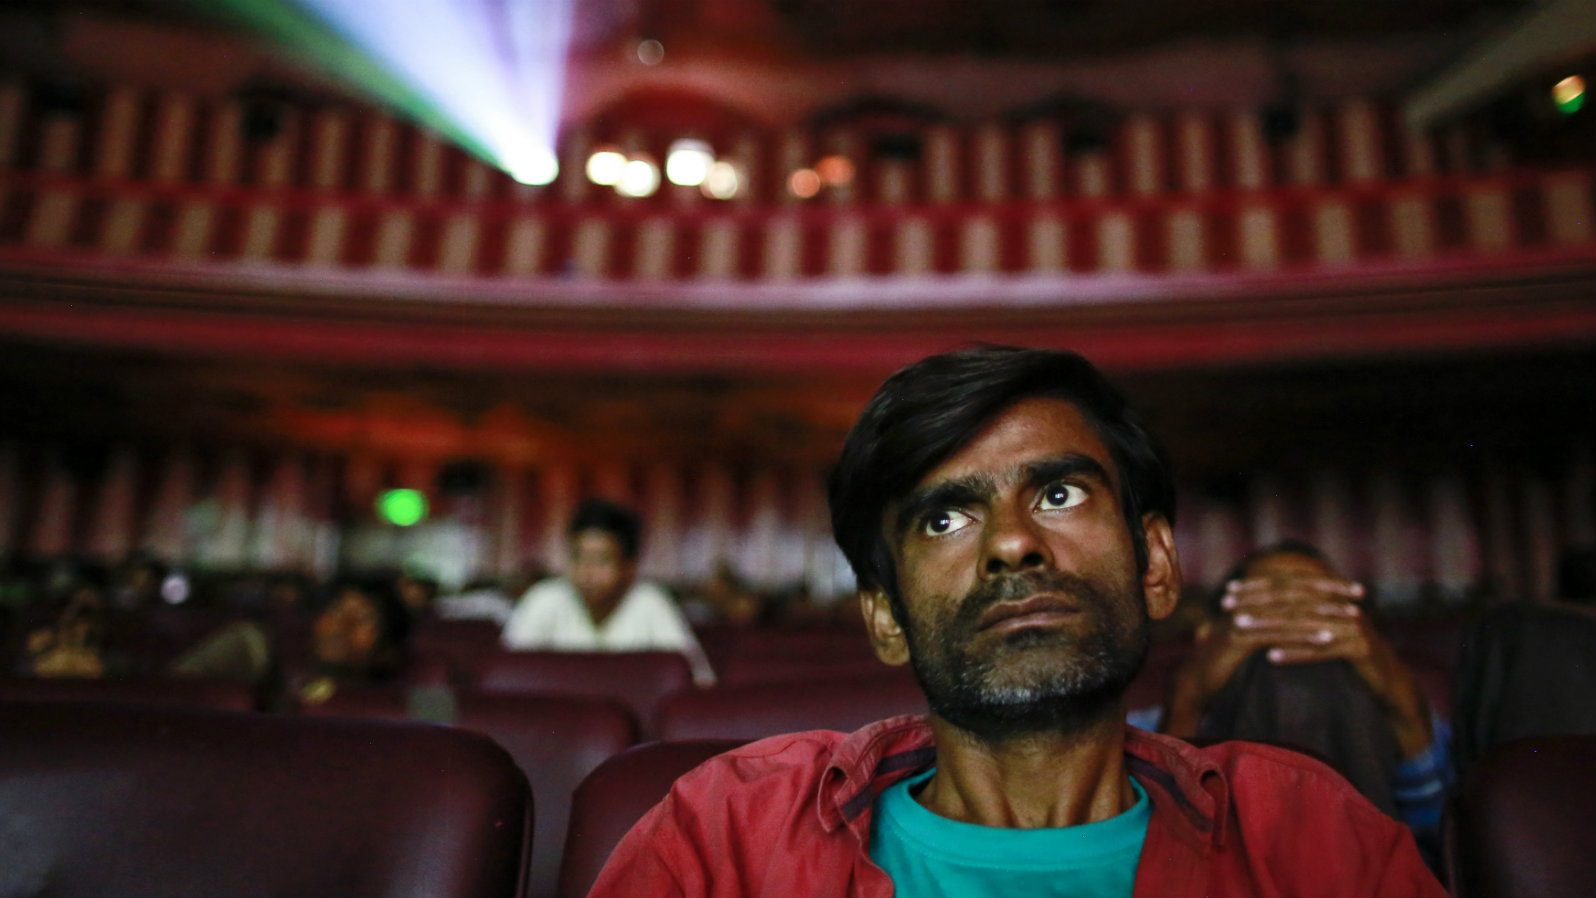 "Cinema goers watch Bollywood movie ""Dilwale Dulhania Le Jayenge"" (The Big Hearted Will Take the Bride), starring actor Shah Rukh Khan, inside Maratha Mandir theatre in Mumbai December 11, 2014. The movie, released in October 1995, has set a record of completing 1000 weeks of continuous screening at a cinema, a feat unmatched by any other Bollywood movies. According to Manoj Desai, owner of the theatre, the movie, which is still being screened, enjoys at least 50 to 60 percent occupancy on weekdays and full house on weekends at his theatre. The movie is screened only in the morning and the ticket price ranges from 15 to 20 Indian rupees ($0.24-$0.32). Picture taken December 11, 2014."